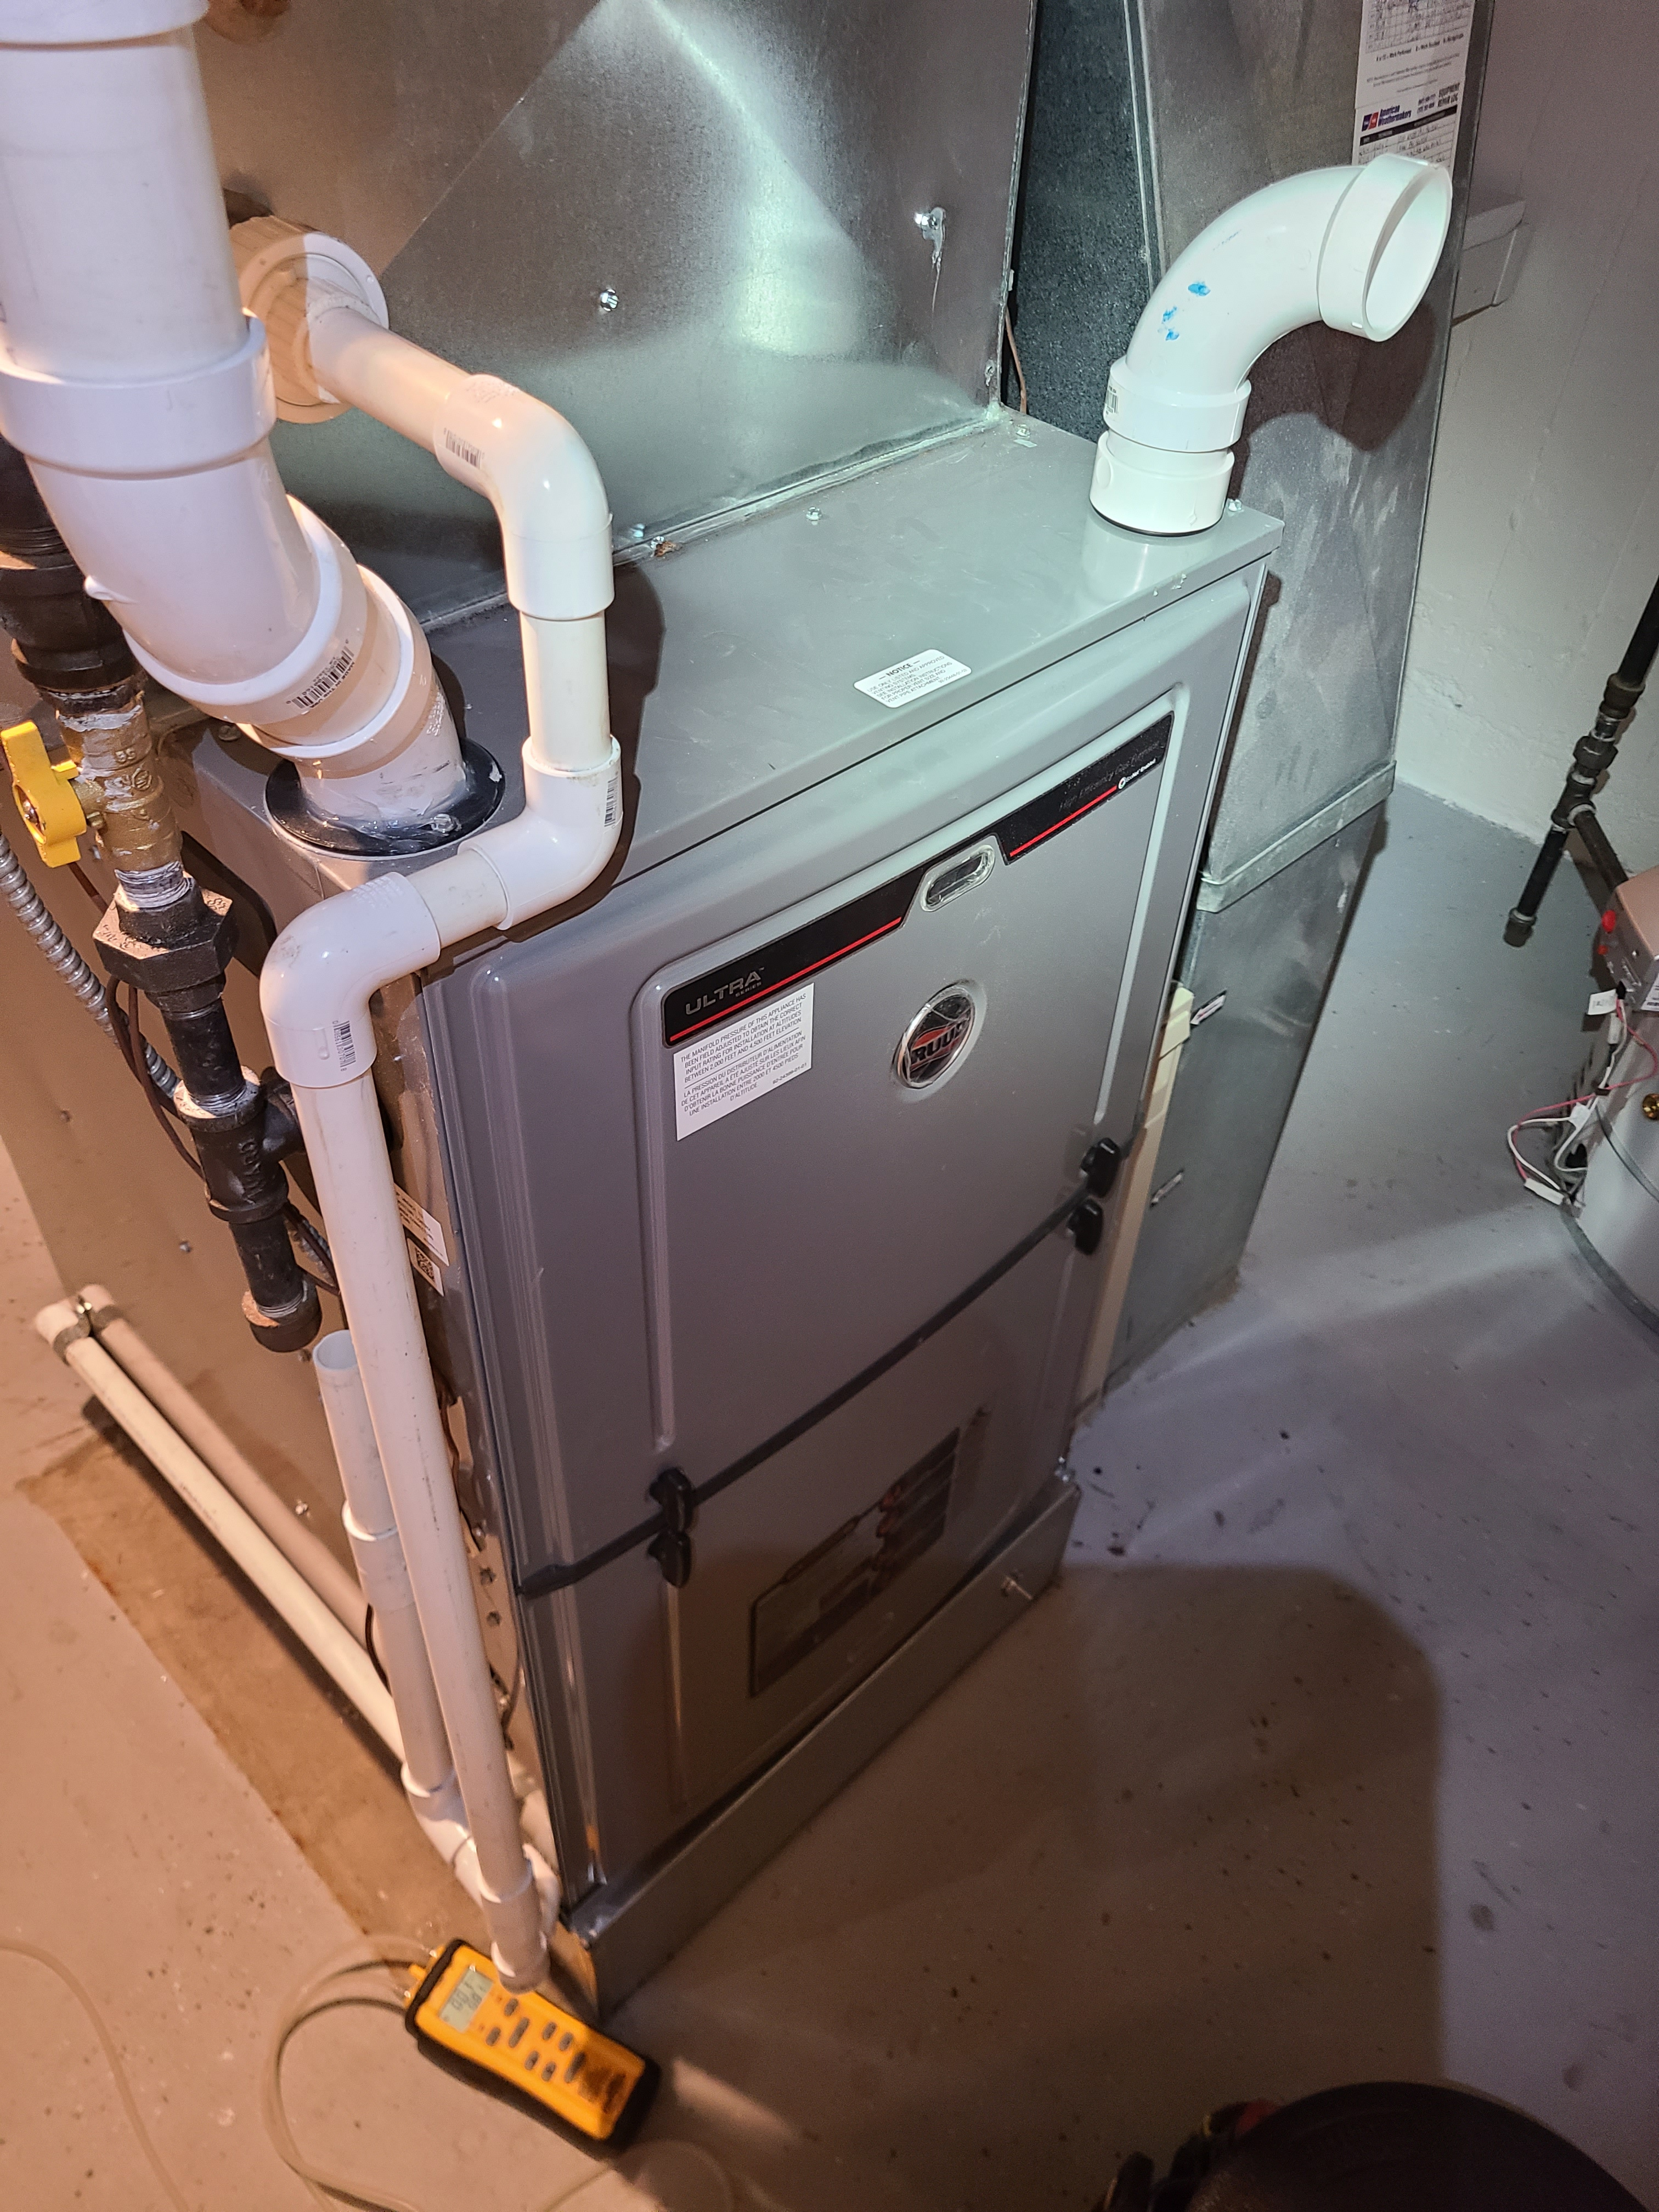 Ruud 95% efficiency furnace cleaned and tested